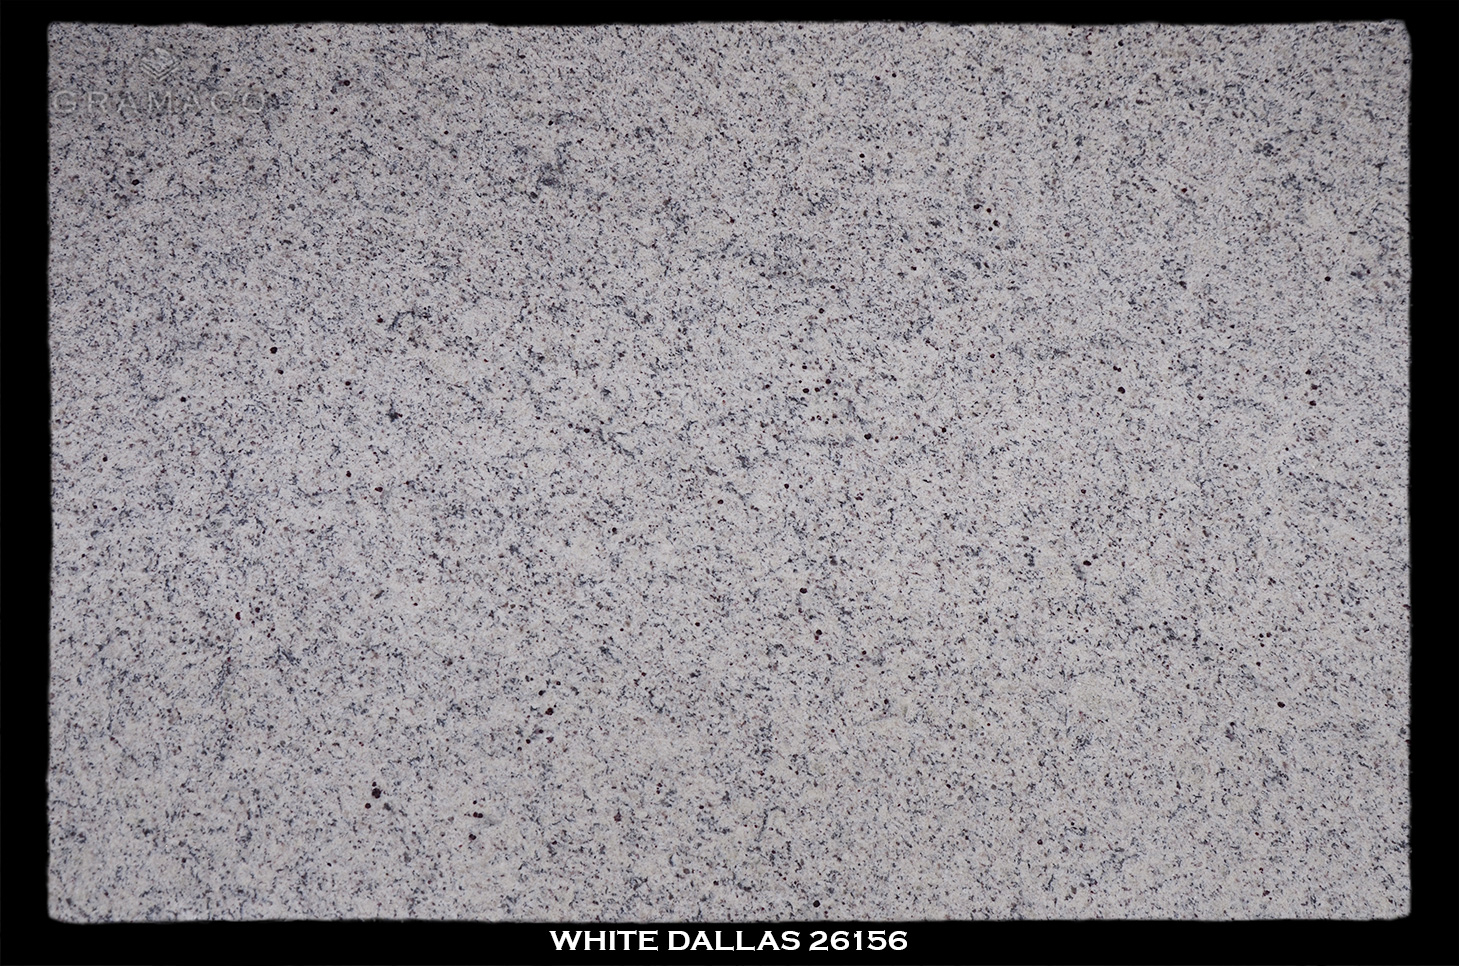 WHITE-DALLAS-26156---FULL-SLAB-BLACK